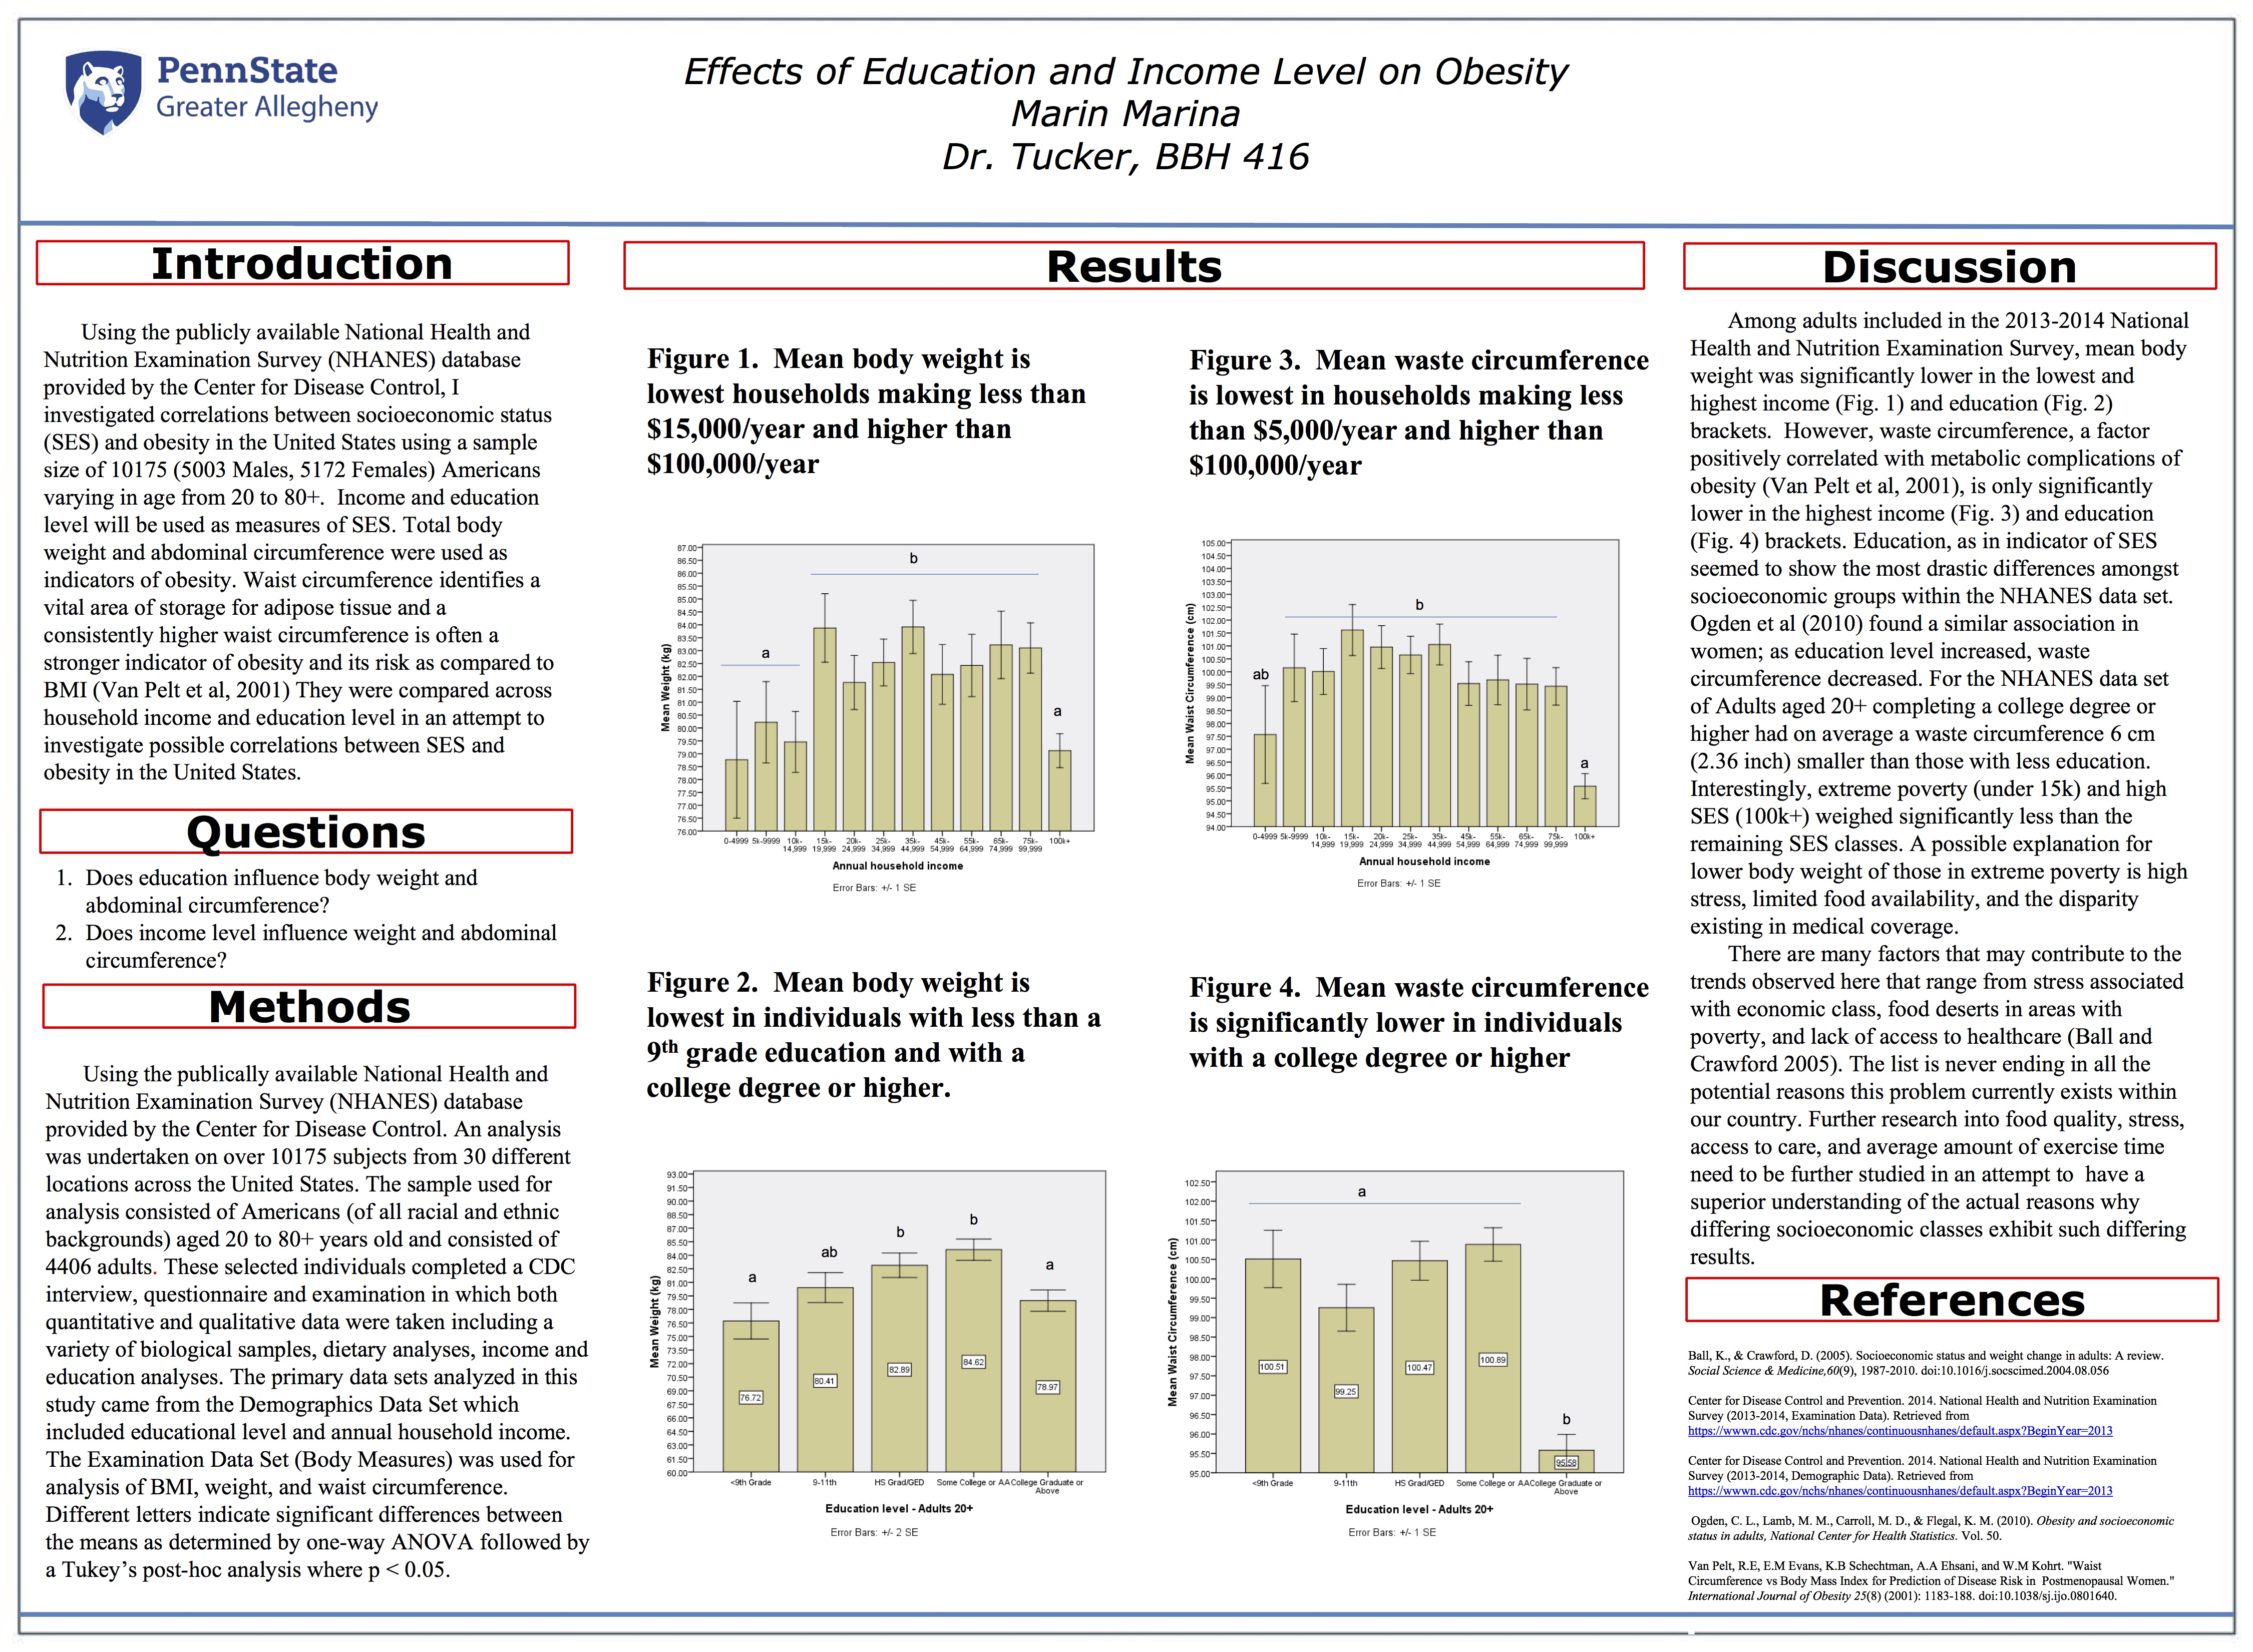 Student research poster on education and obesity level